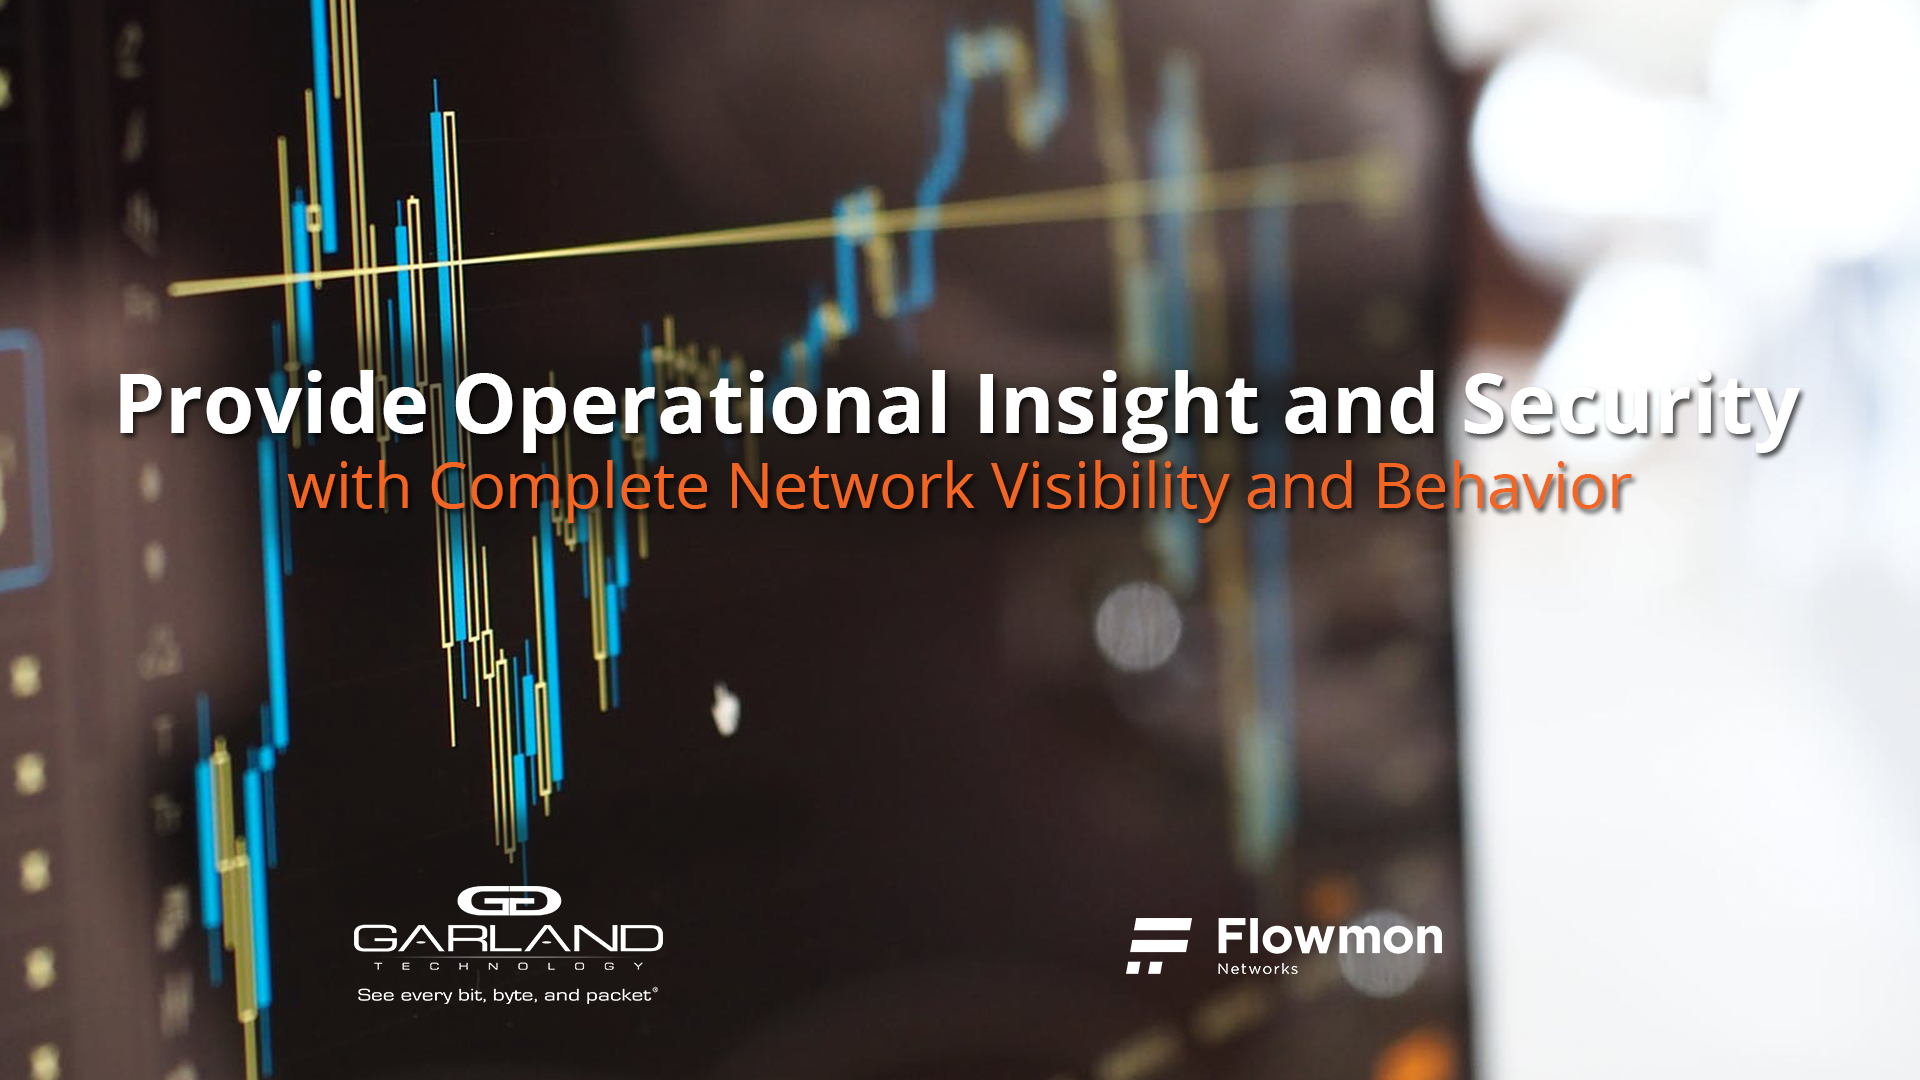 On-Demand Webinar with Flowmon providing operational insight and security